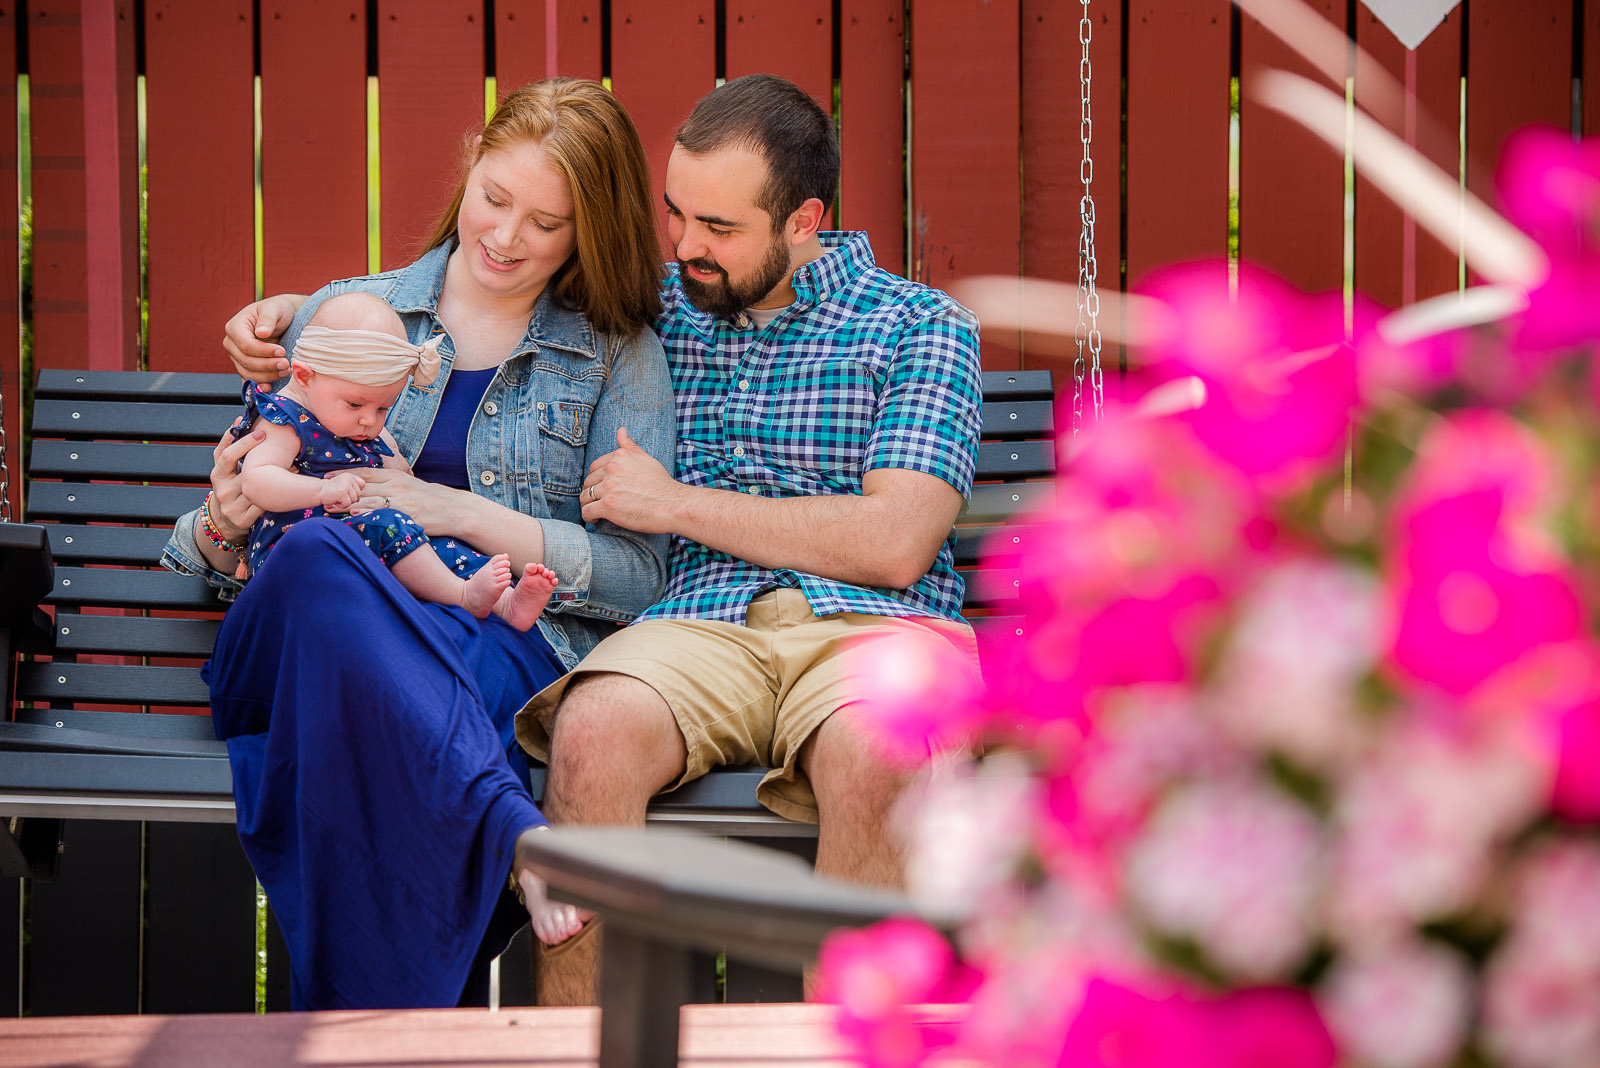 Eric_and_Christy_Photography_Blog_Cannon_Family-14